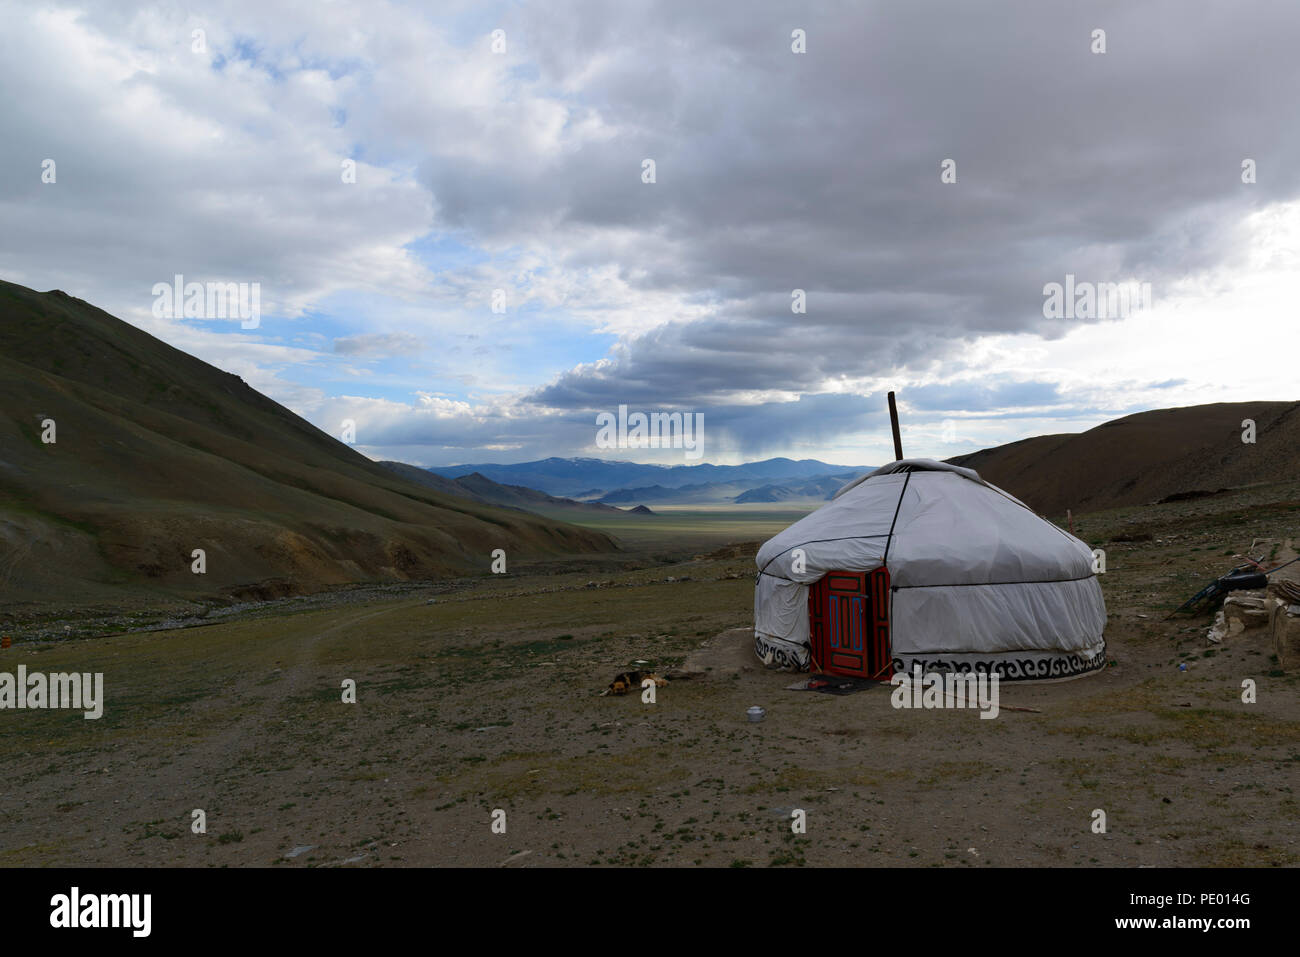 A ger or yurt on the steppe in Mongolia - Stock Image